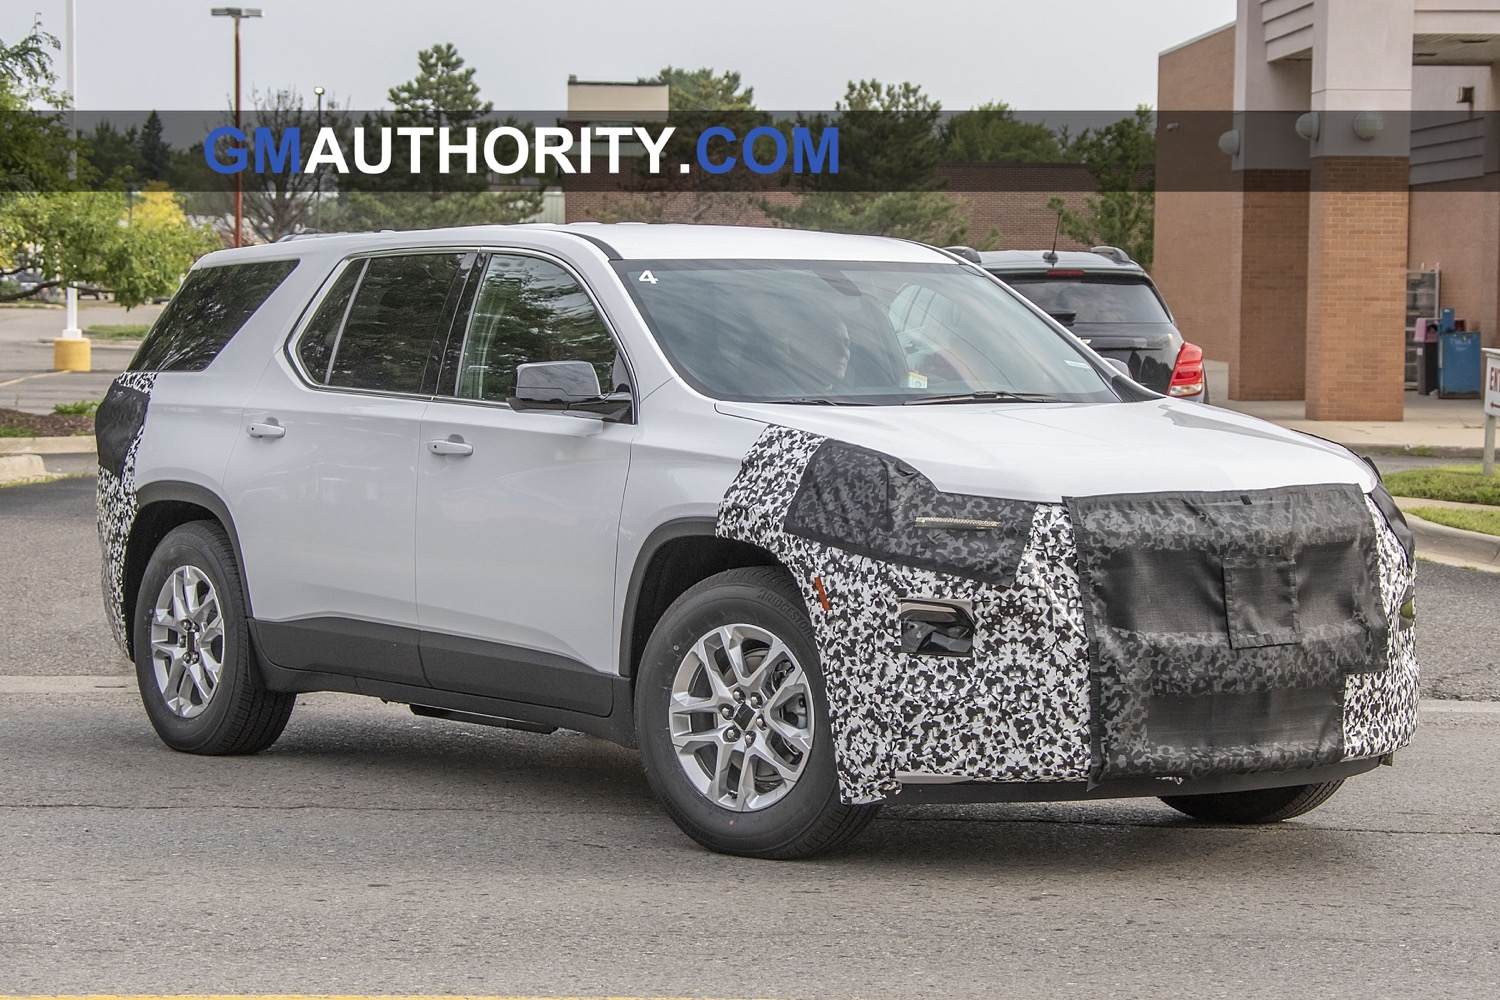 2021 Chevrolet Traverse Refresh Caught In Spy Shots | Gm 2021 Chevy Traverse Rs Review, Awd, Awd Review